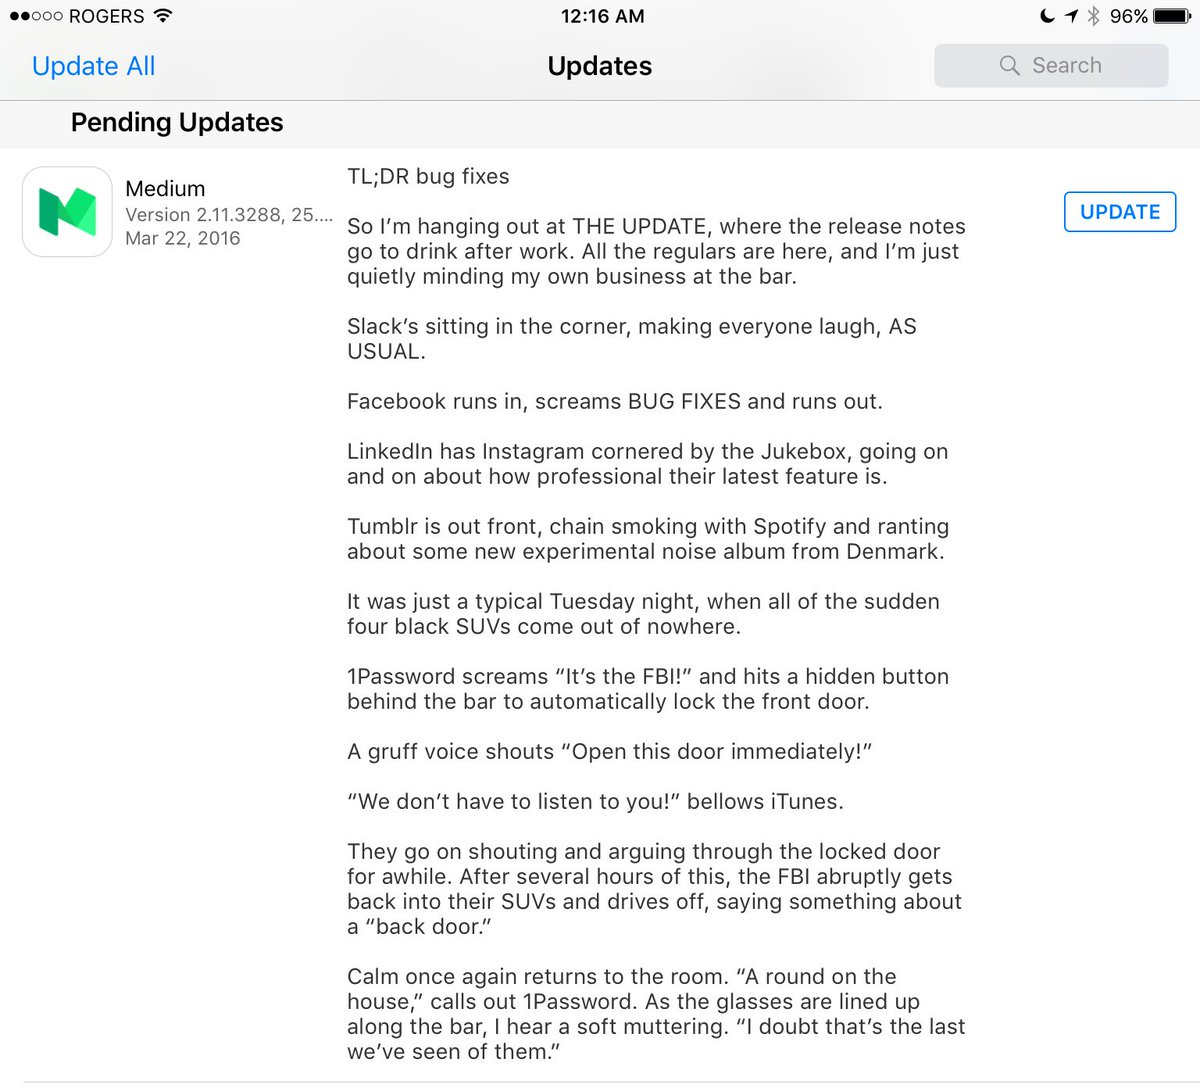 Do we have App Release Notes Awards yet? I think @Medium wins them this year. https://t.co/jw836ww6BC